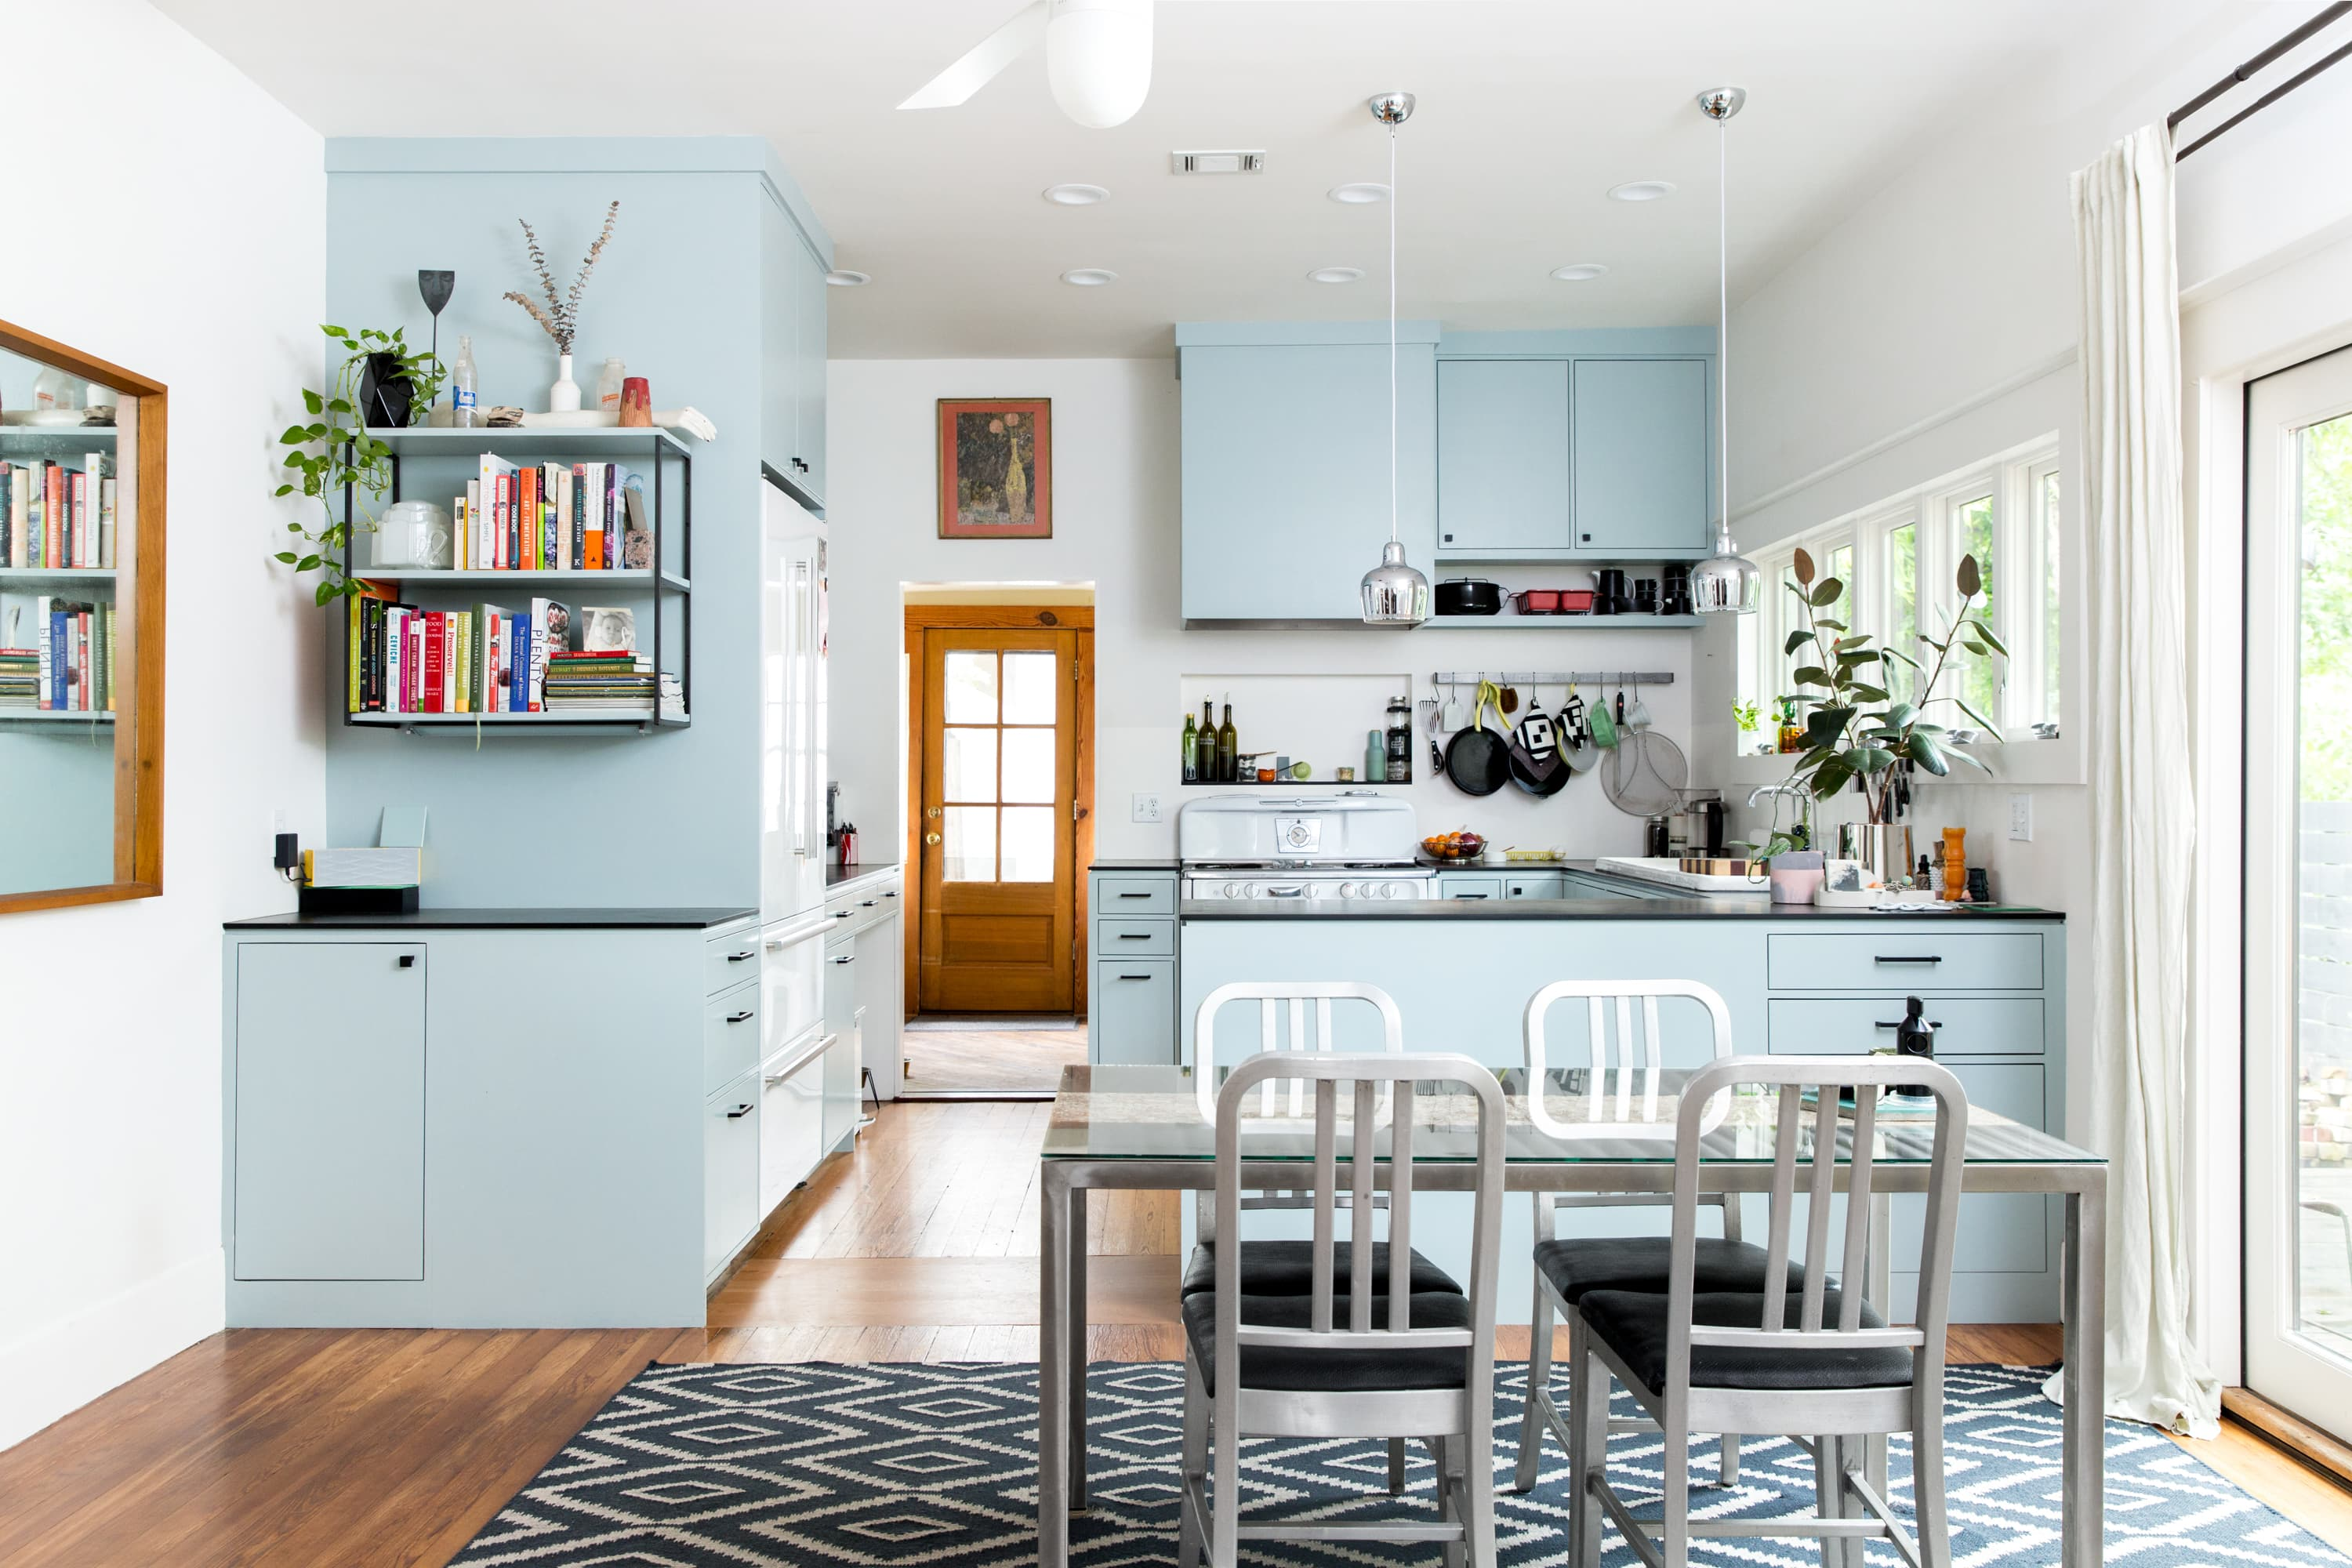 Swell A Diy Renovated Austin Bungalow House Tour Photos Beutiful Home Inspiration Ommitmahrainfo